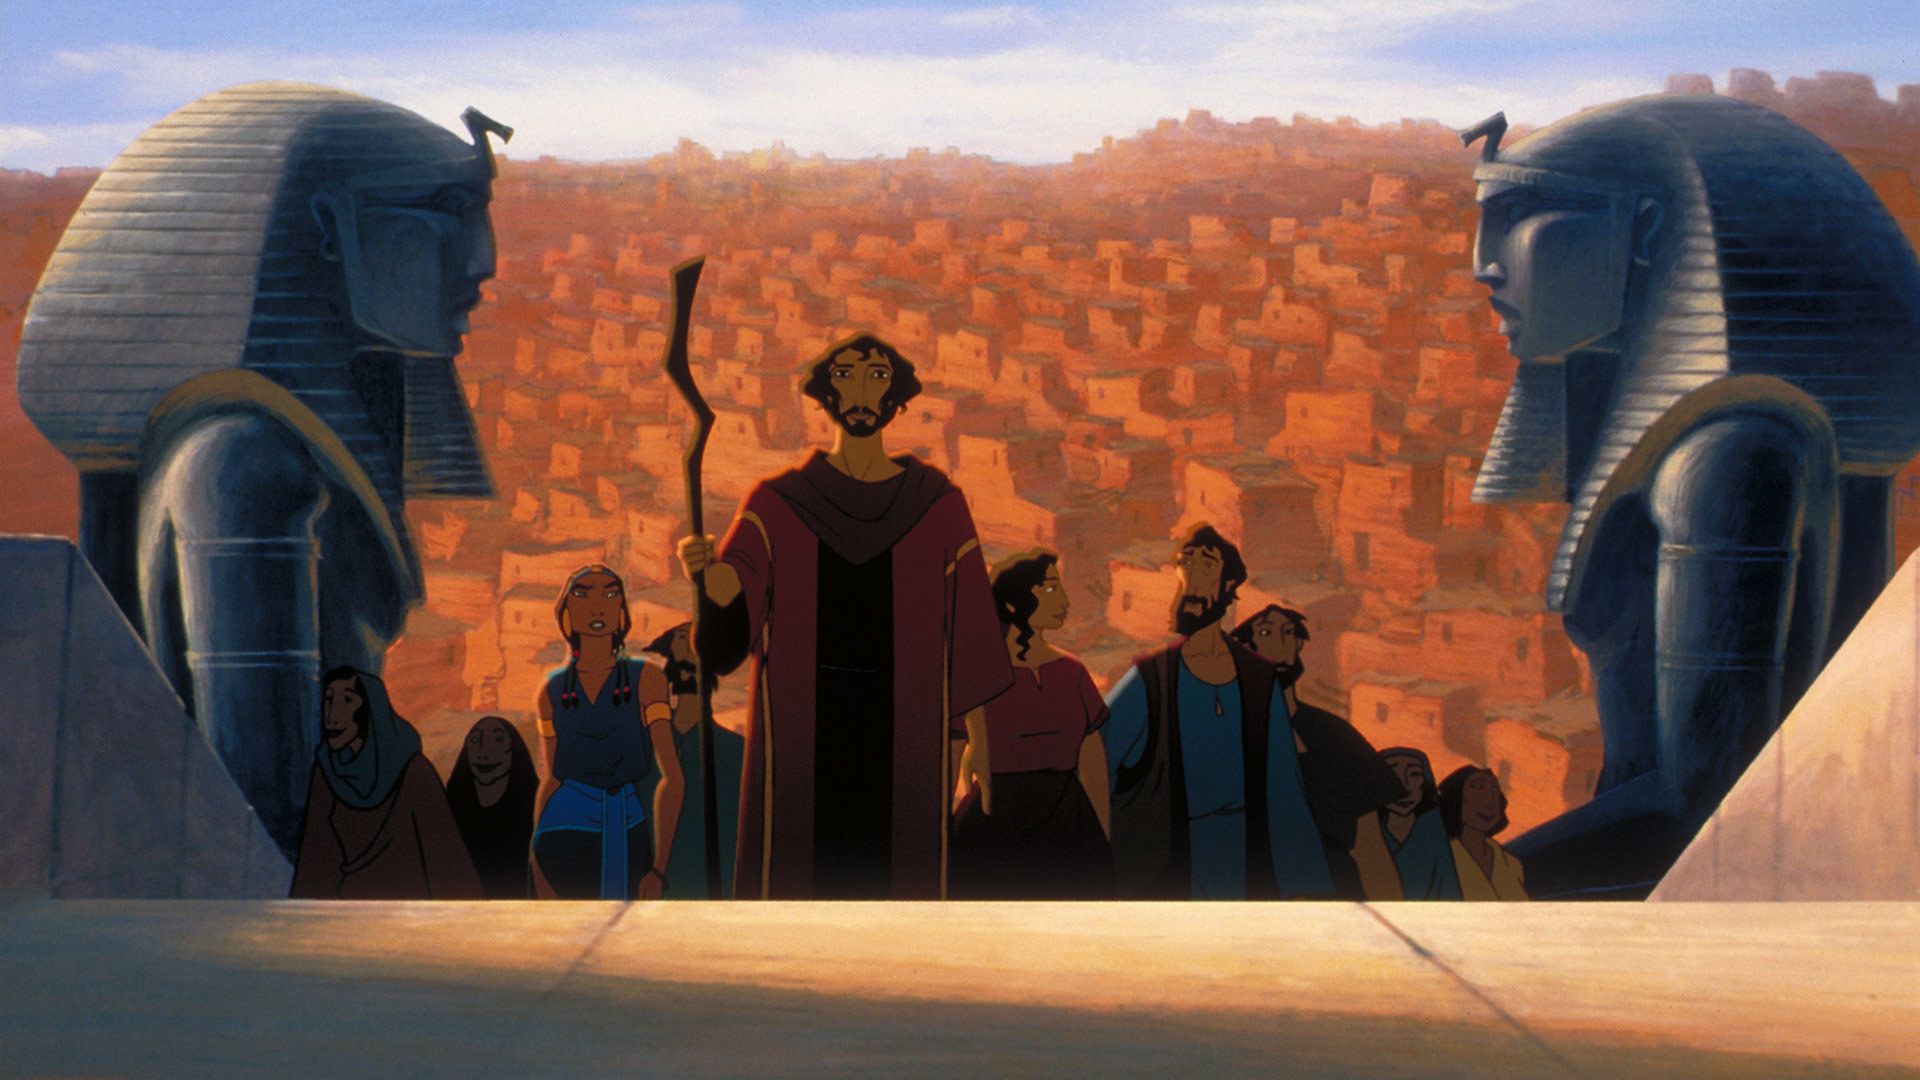 Moses and his followers climbing up the steps towards the Pharaoh's home